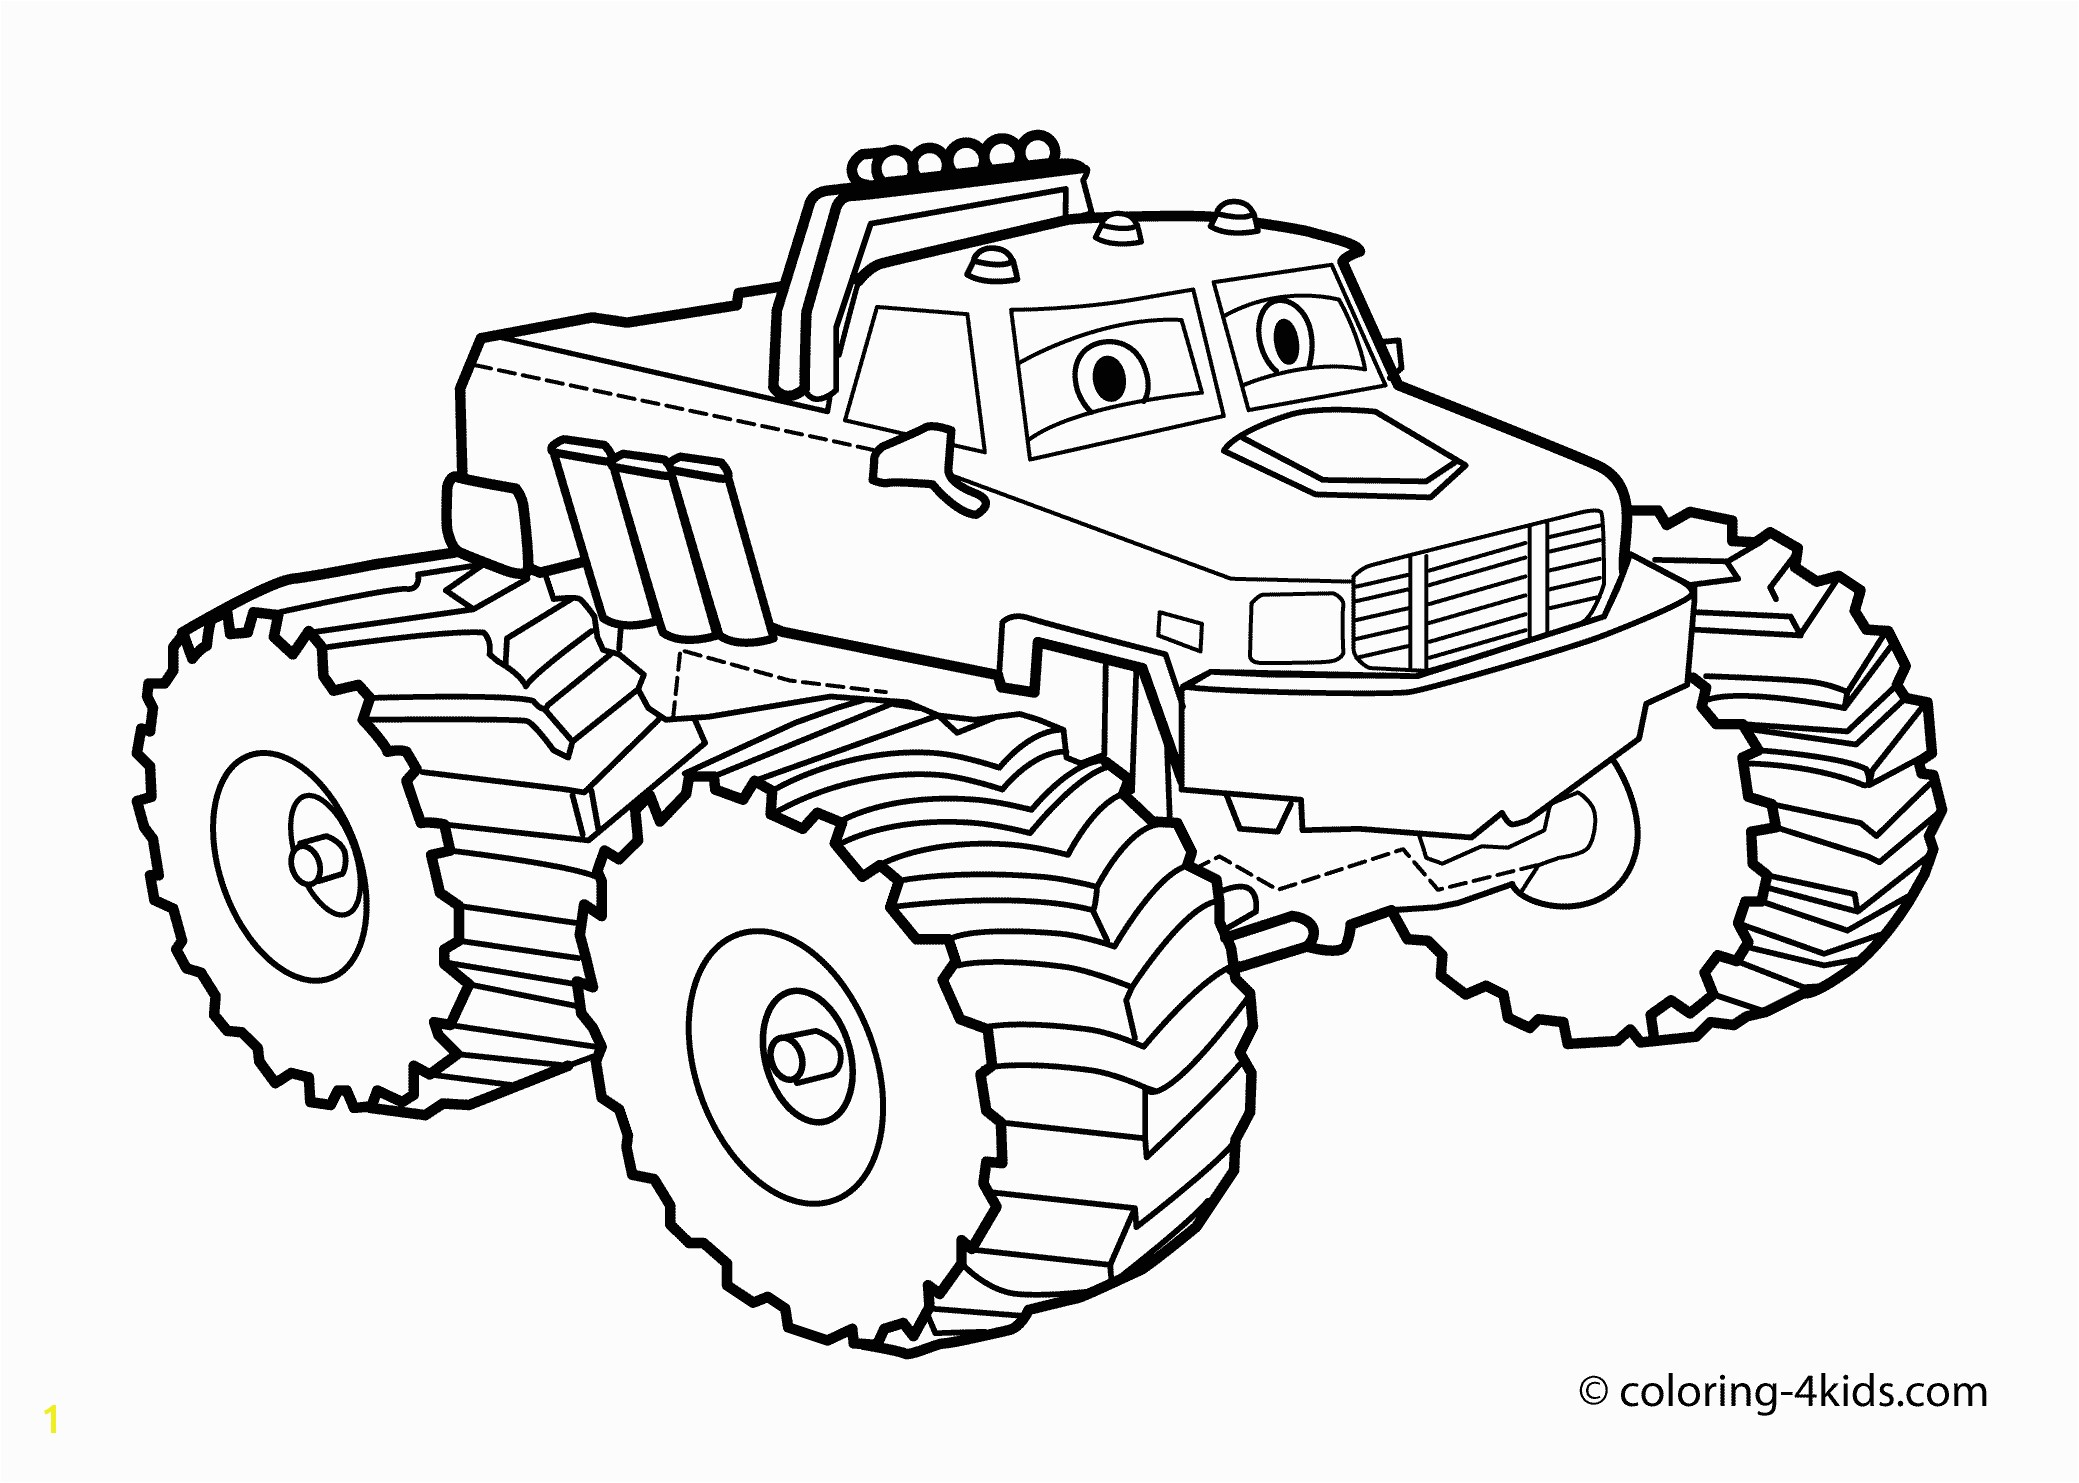 Coloring Book Pages Of Monster Trucks Monster Truck Coloring Page for Kids Monster Truck Coloring Books